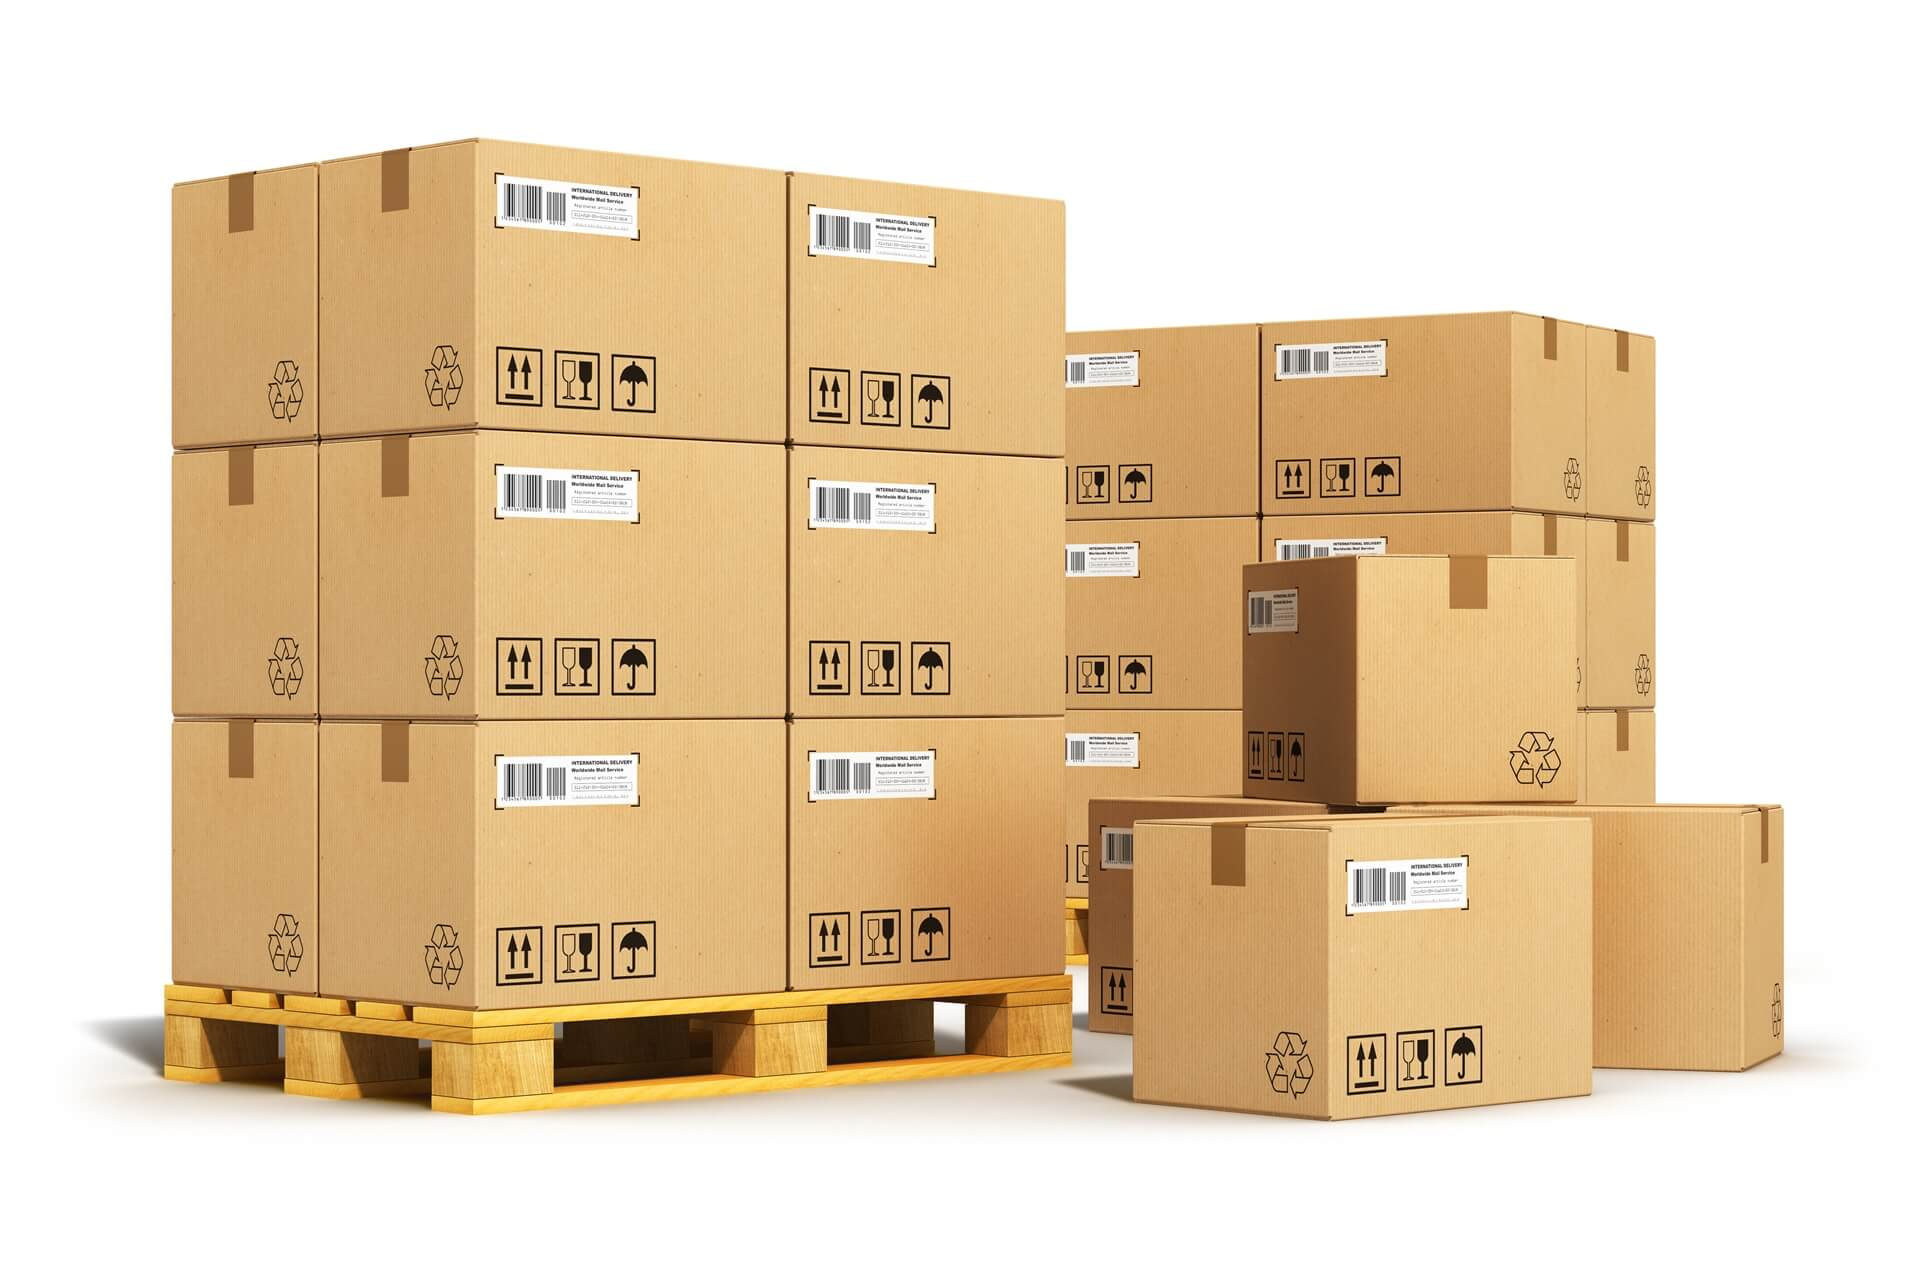 Shipping boxes piled up